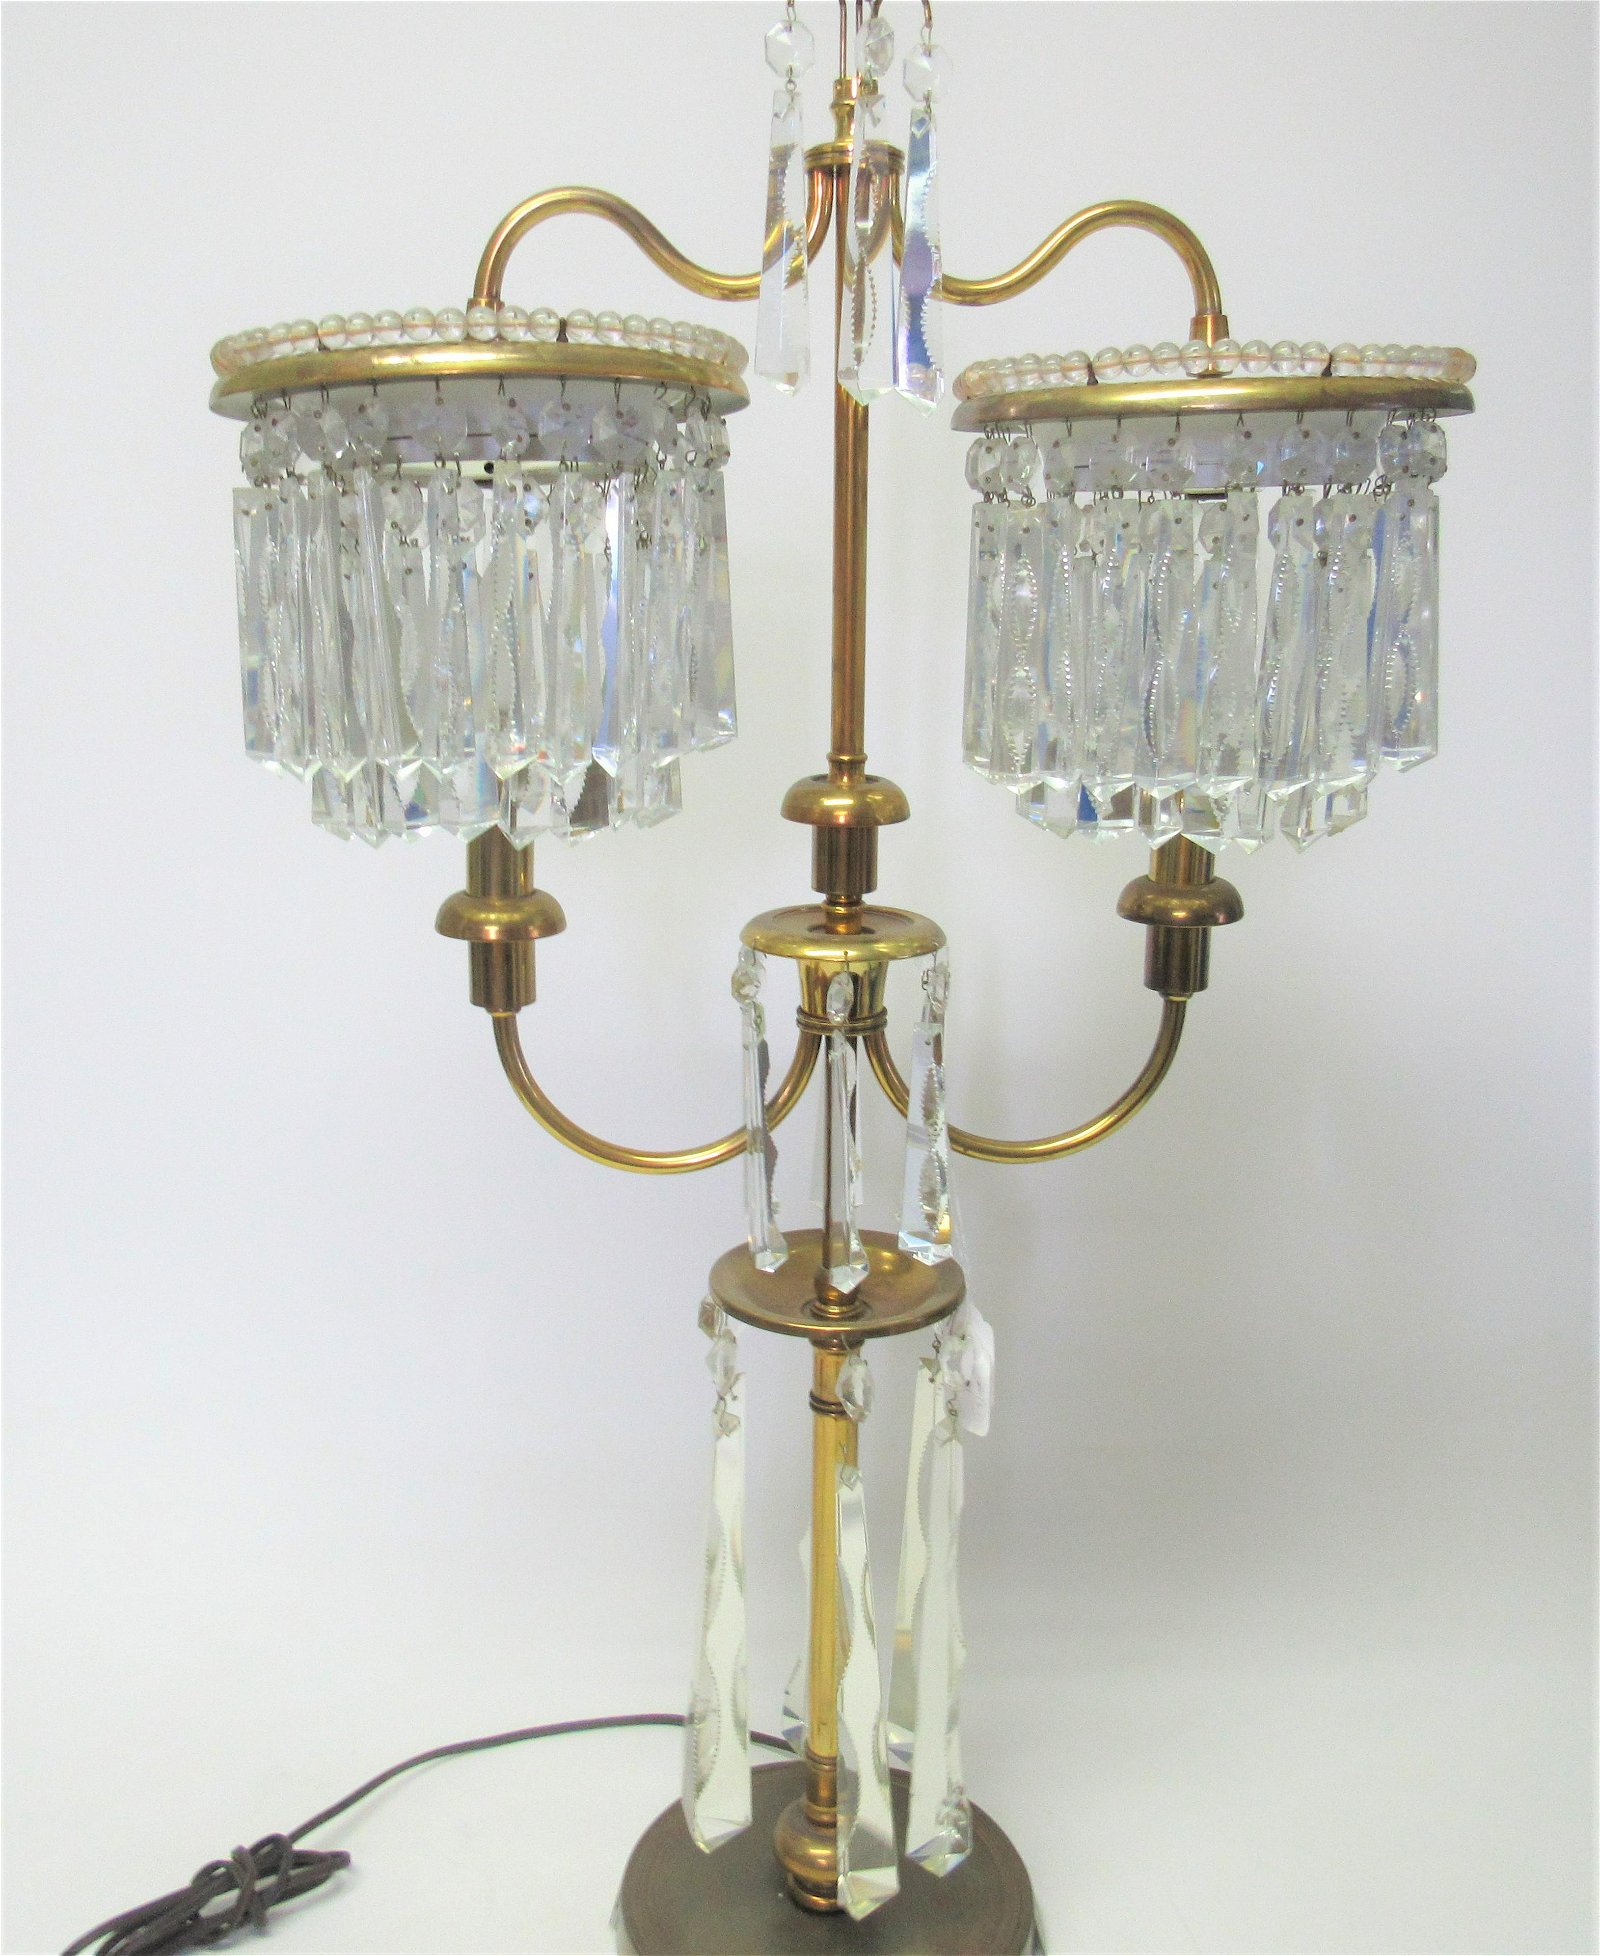 Hollywood Regency style hanging crystals lamp